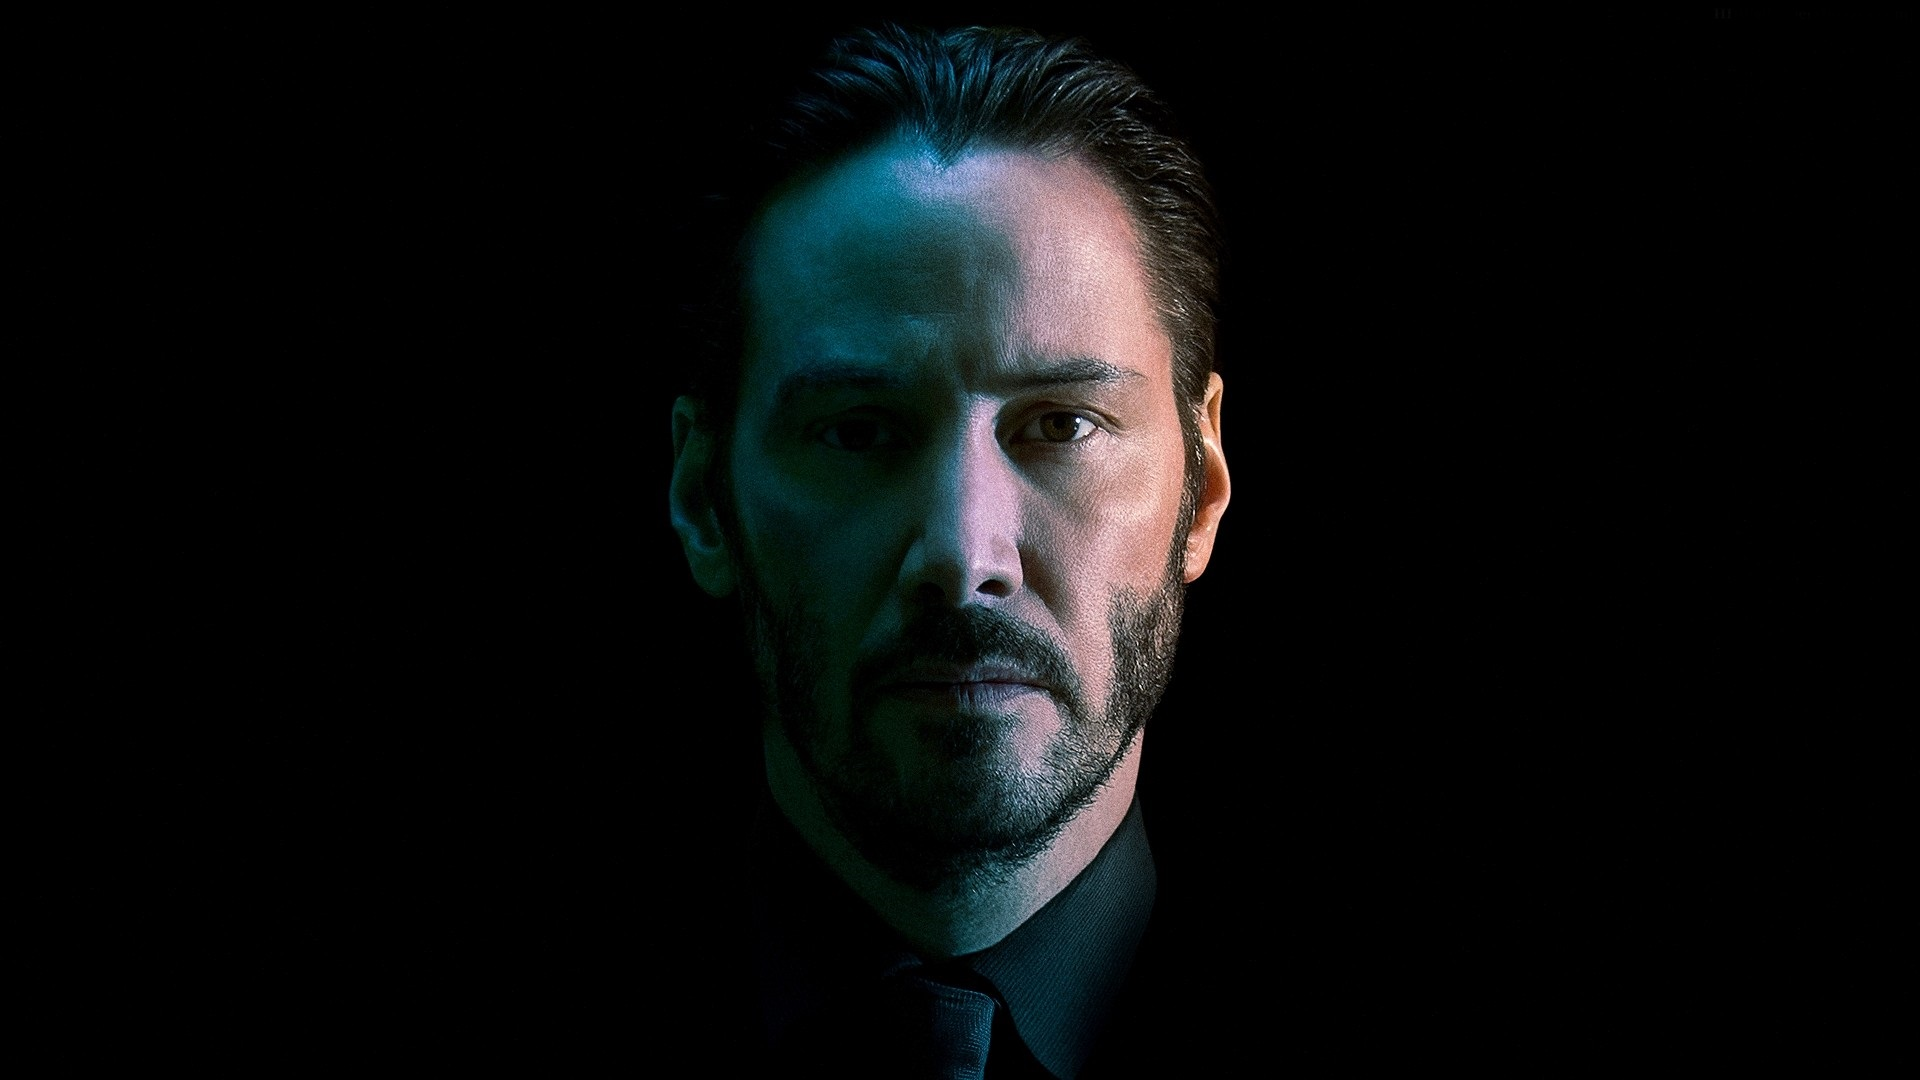 Keanu Reeves HD Wallpapers